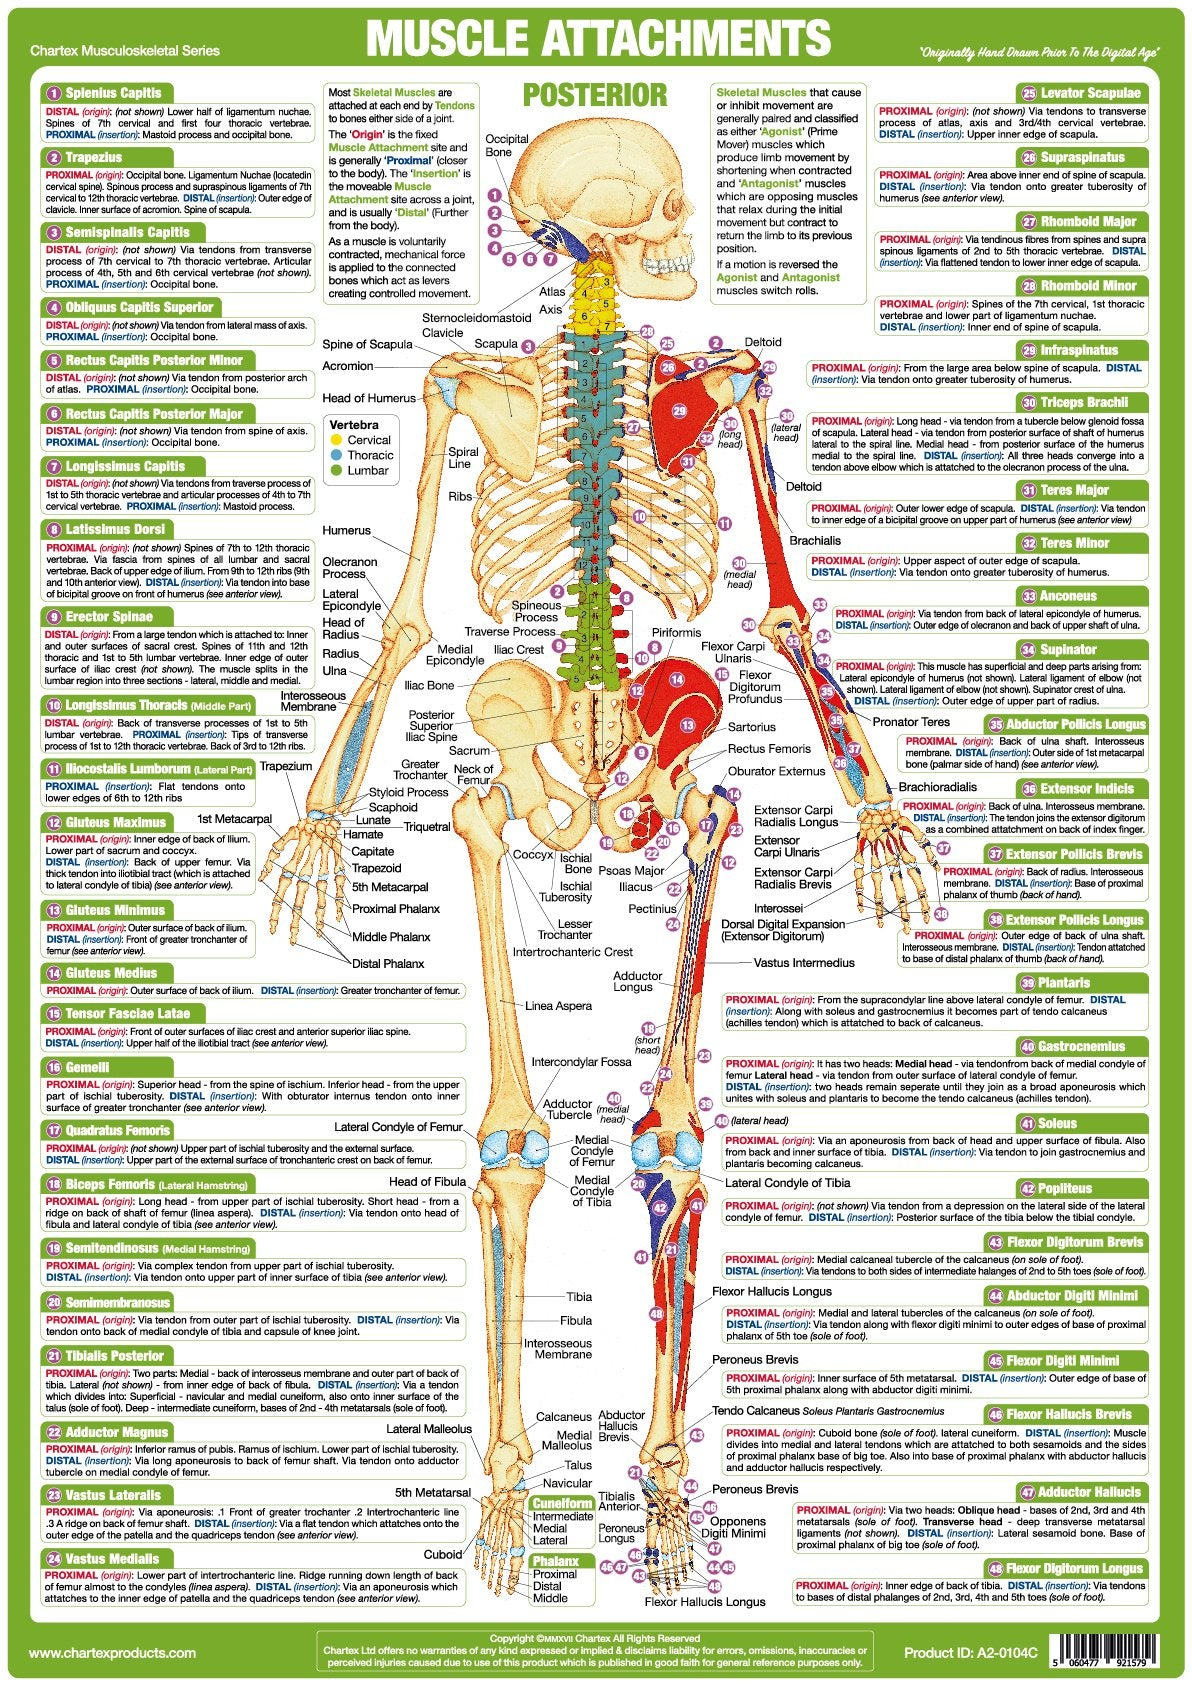 Muscle Attachments Chart - Posterior